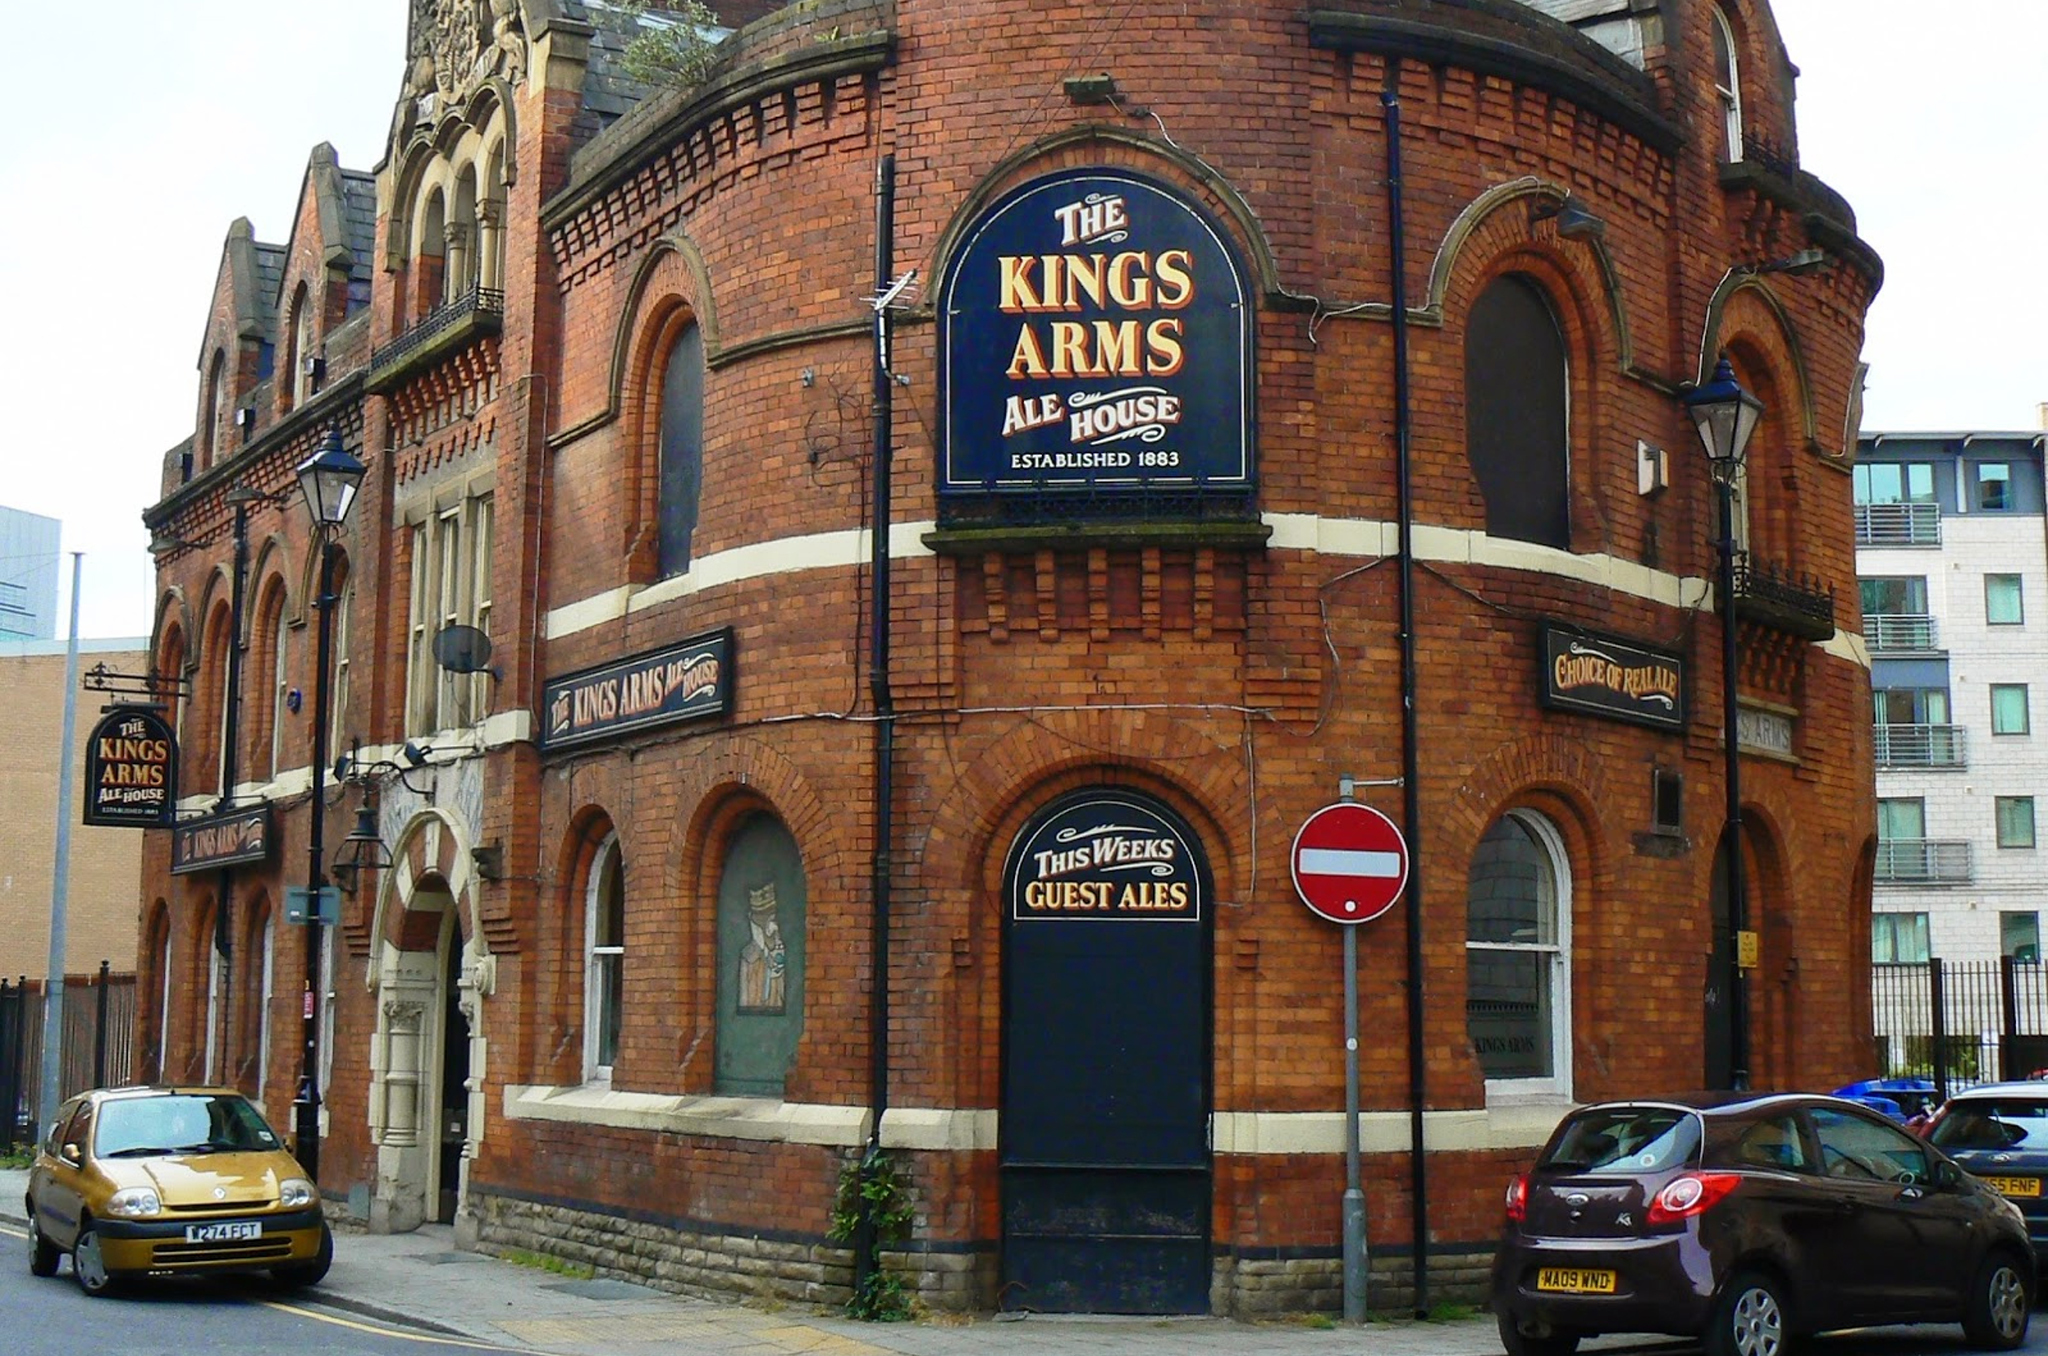 The King's Arms, Manchester